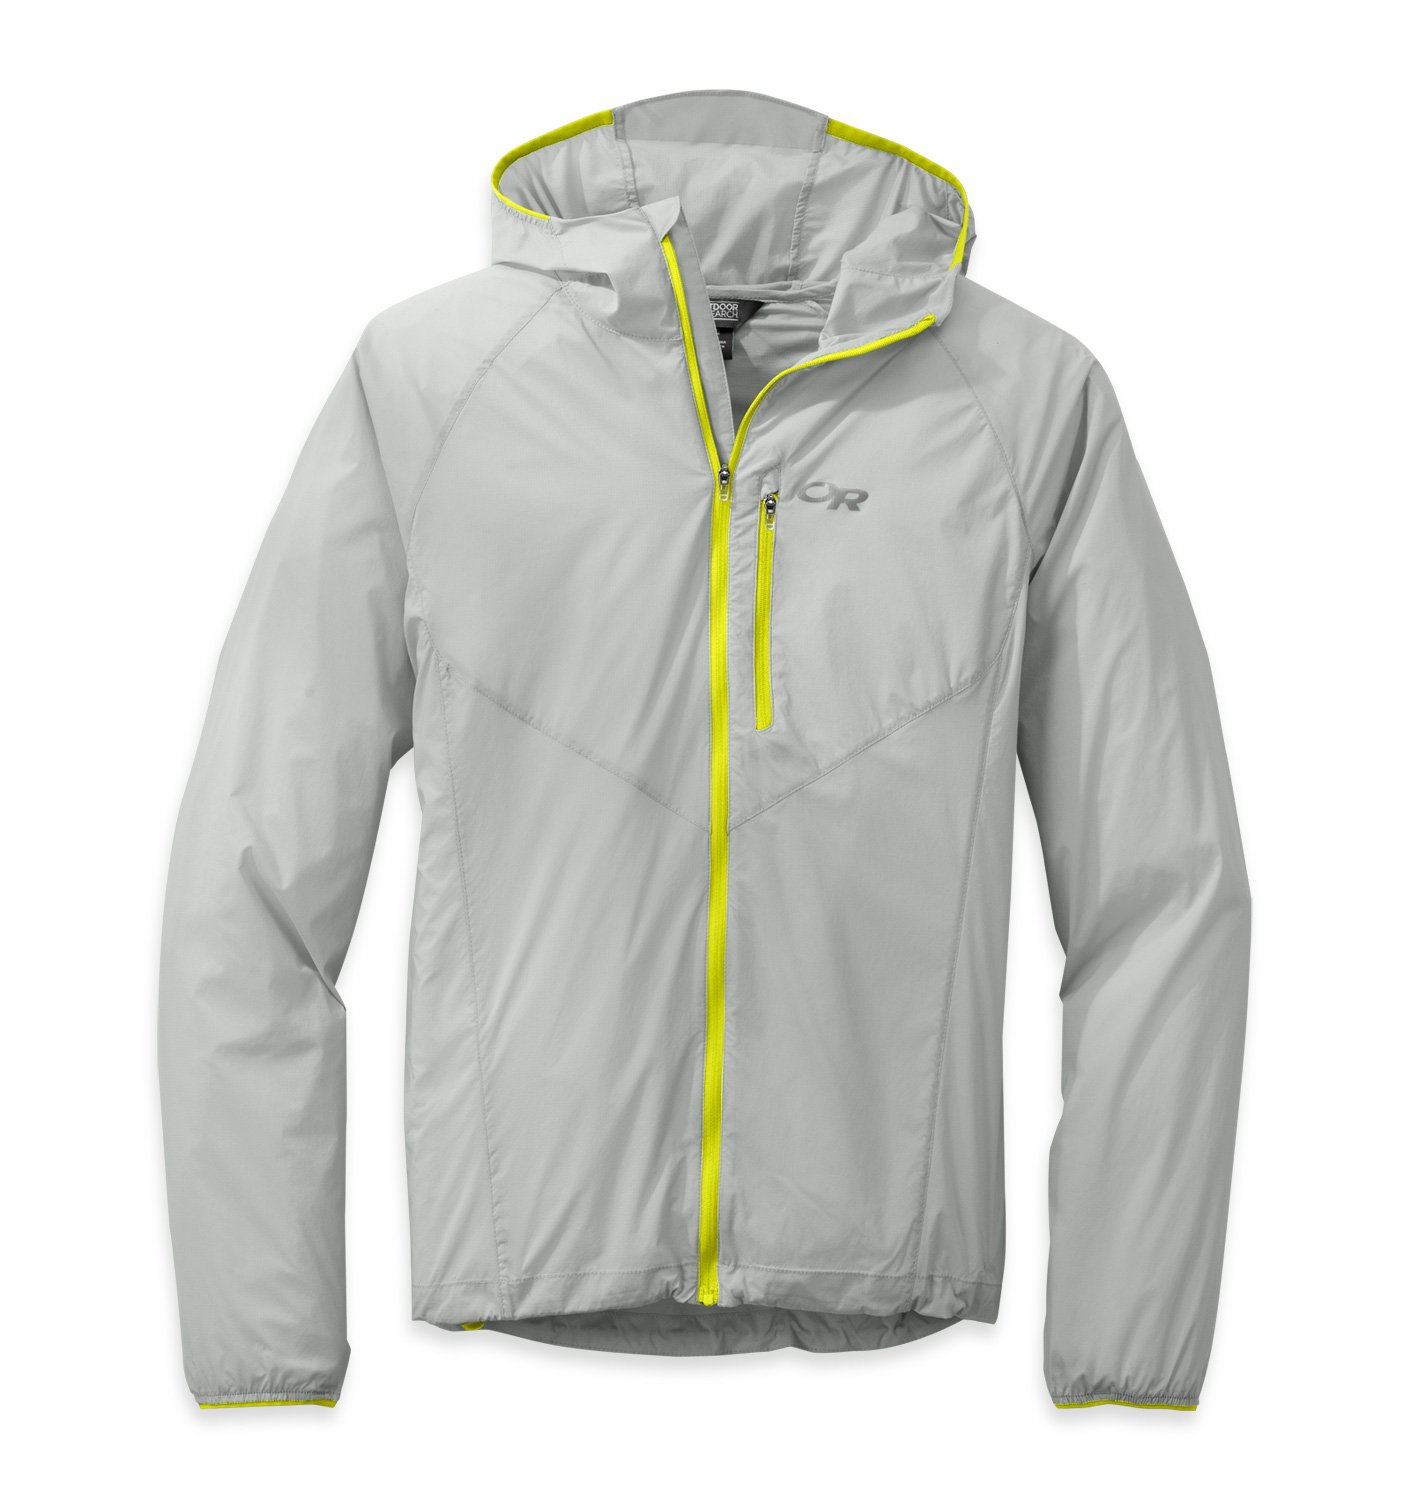 Outdoor Research Men's Tantrum Hooded Jacket, Alloy/Jolt, L by Outdoor Research